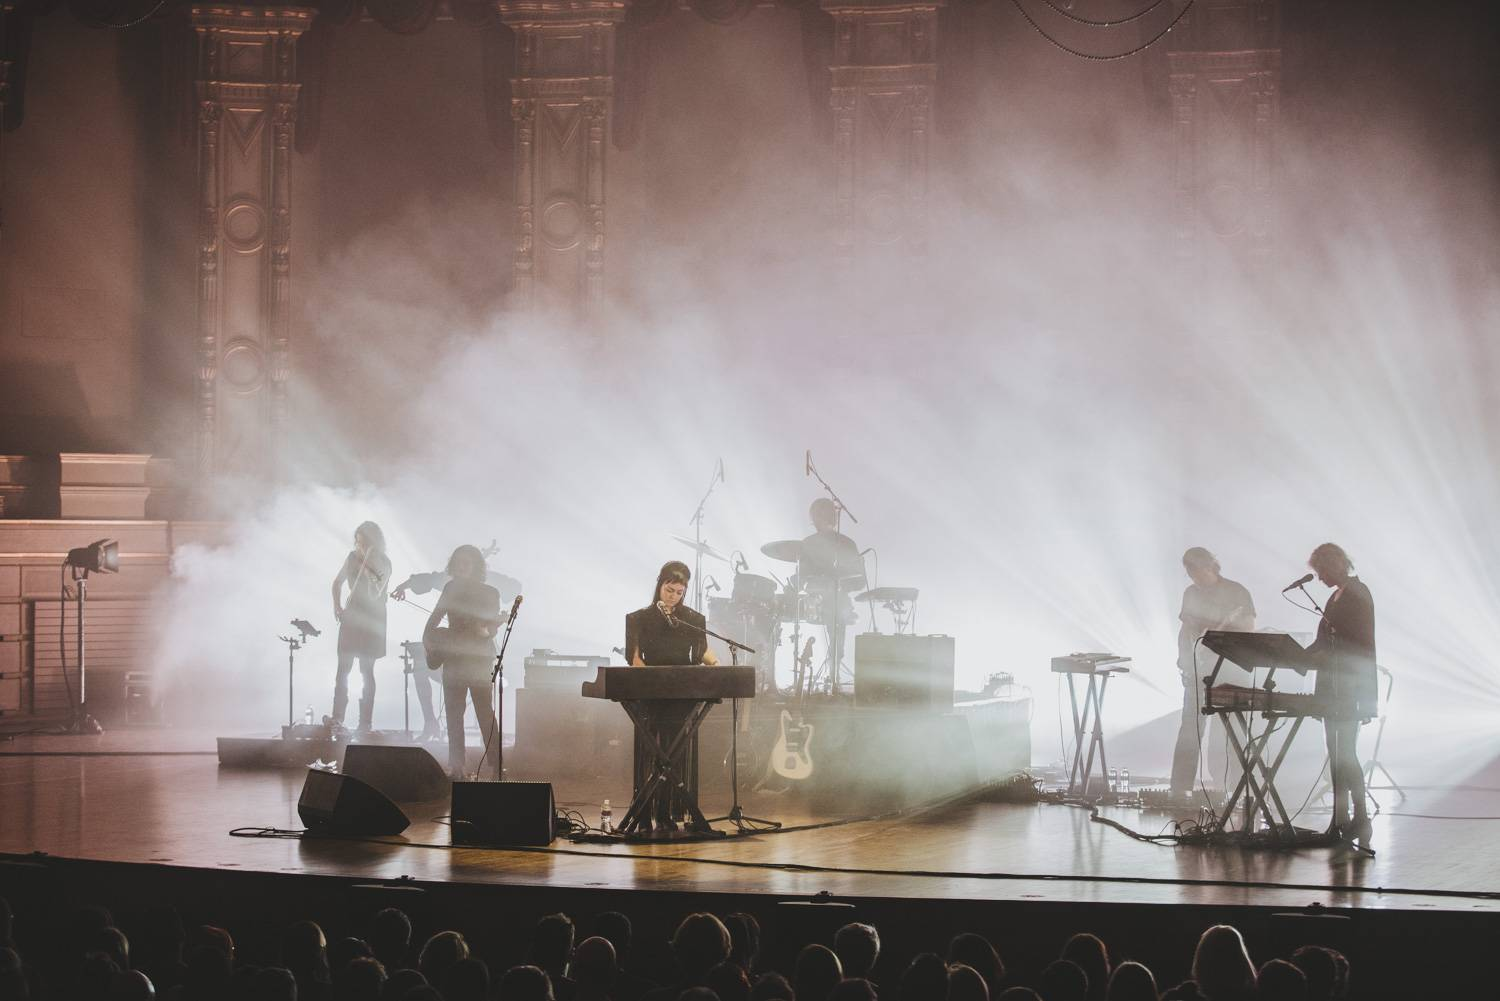 Angel Olsen at the Orpheum Theater, Vancouver, Dec 10 2019. Pavel Boiko photo.